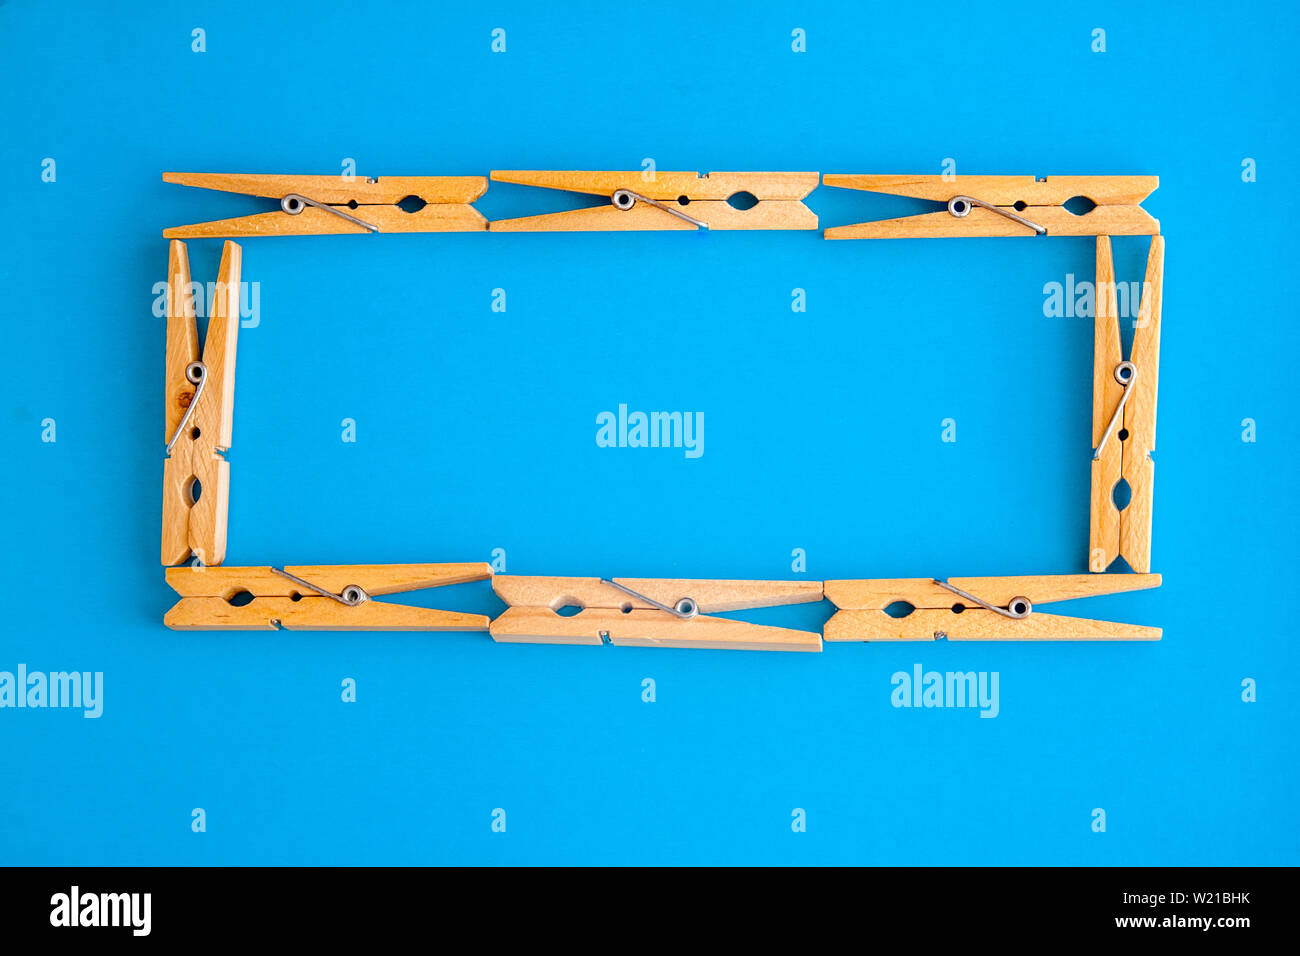 Round Or Rectangular Frame Made Of Wooden Clothespins On The Blue